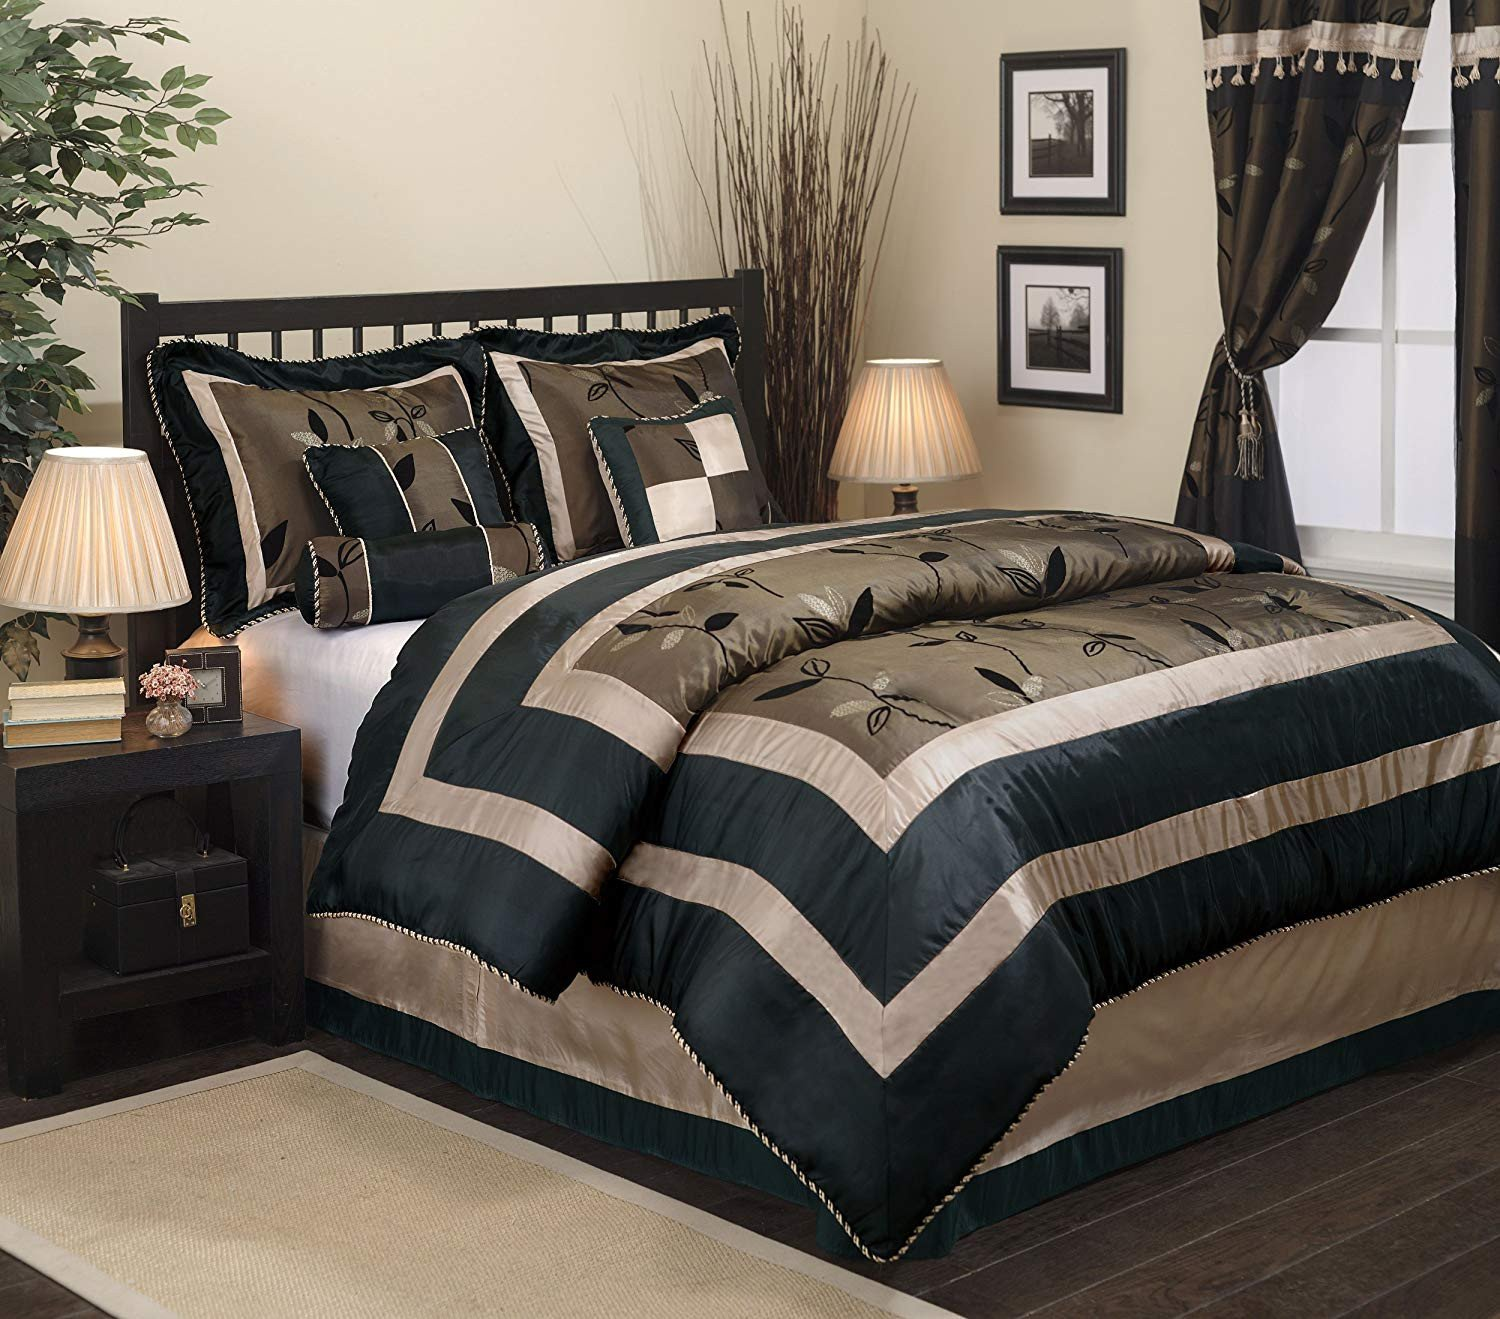 King Bedroom Comforter Set Unique Nanshing Pastora7 Q Pastora Collection Bedroom forter Plete 7 Piece Set Queen Bronze